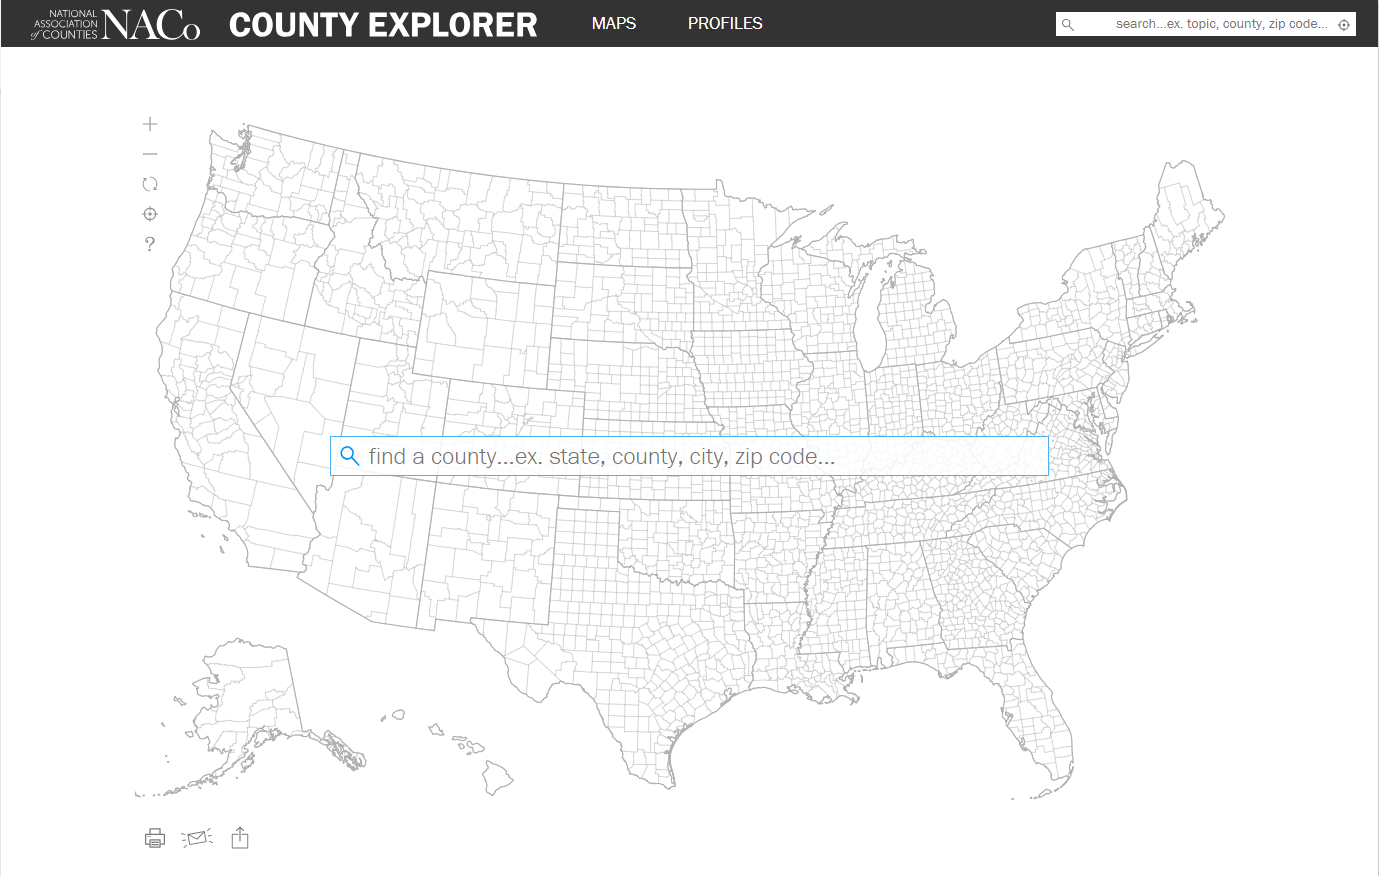 NACo County Explorer - Smoking rates us map